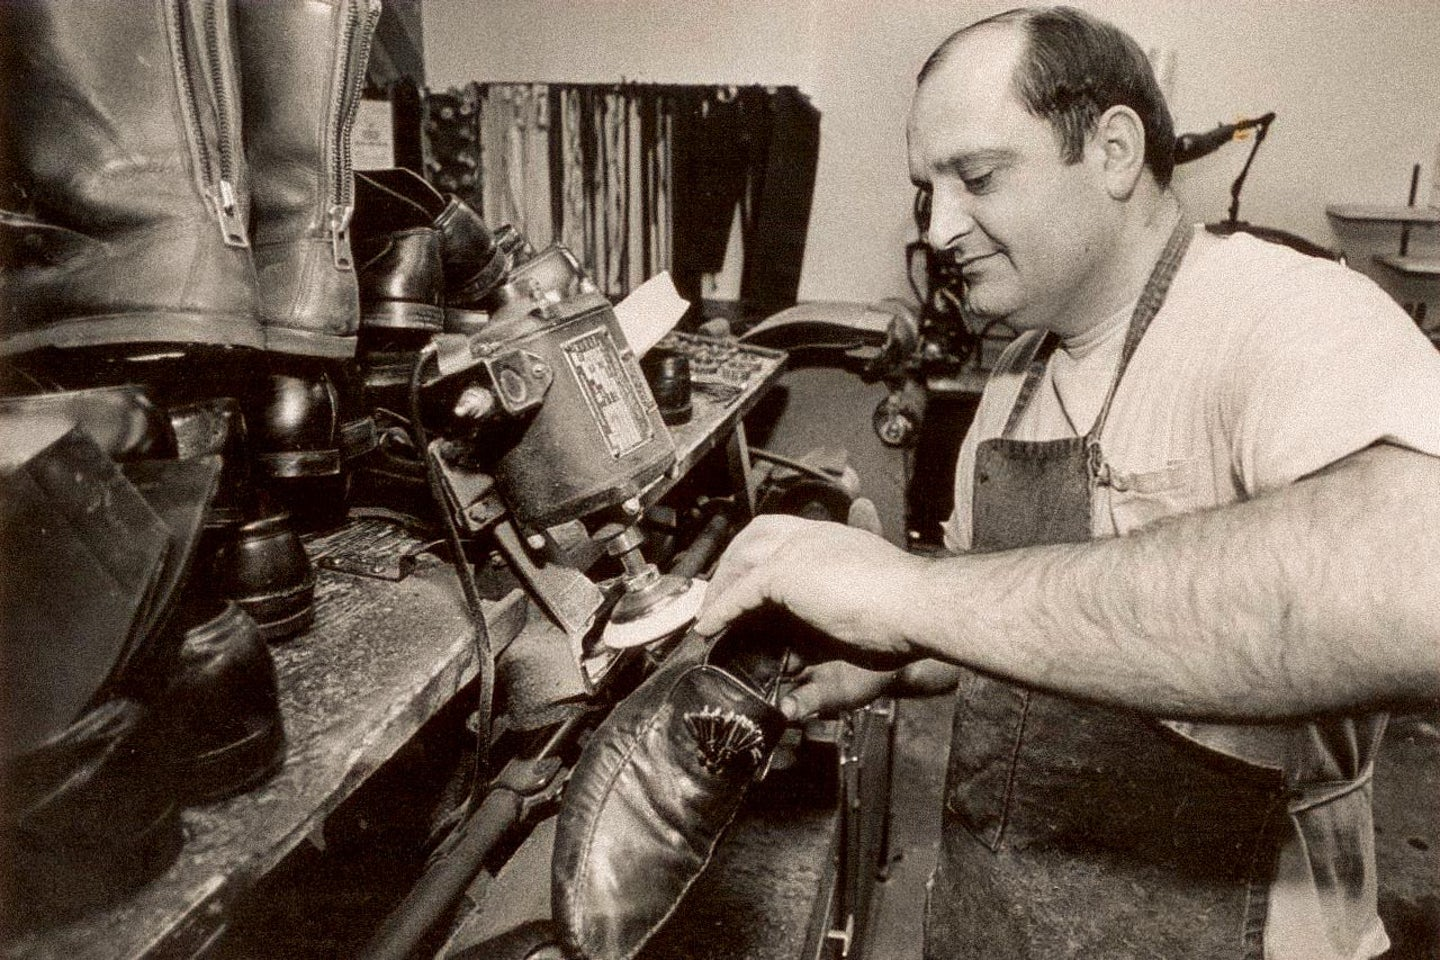 John Vlagos - Master Cobbler and Father of George Vlagos